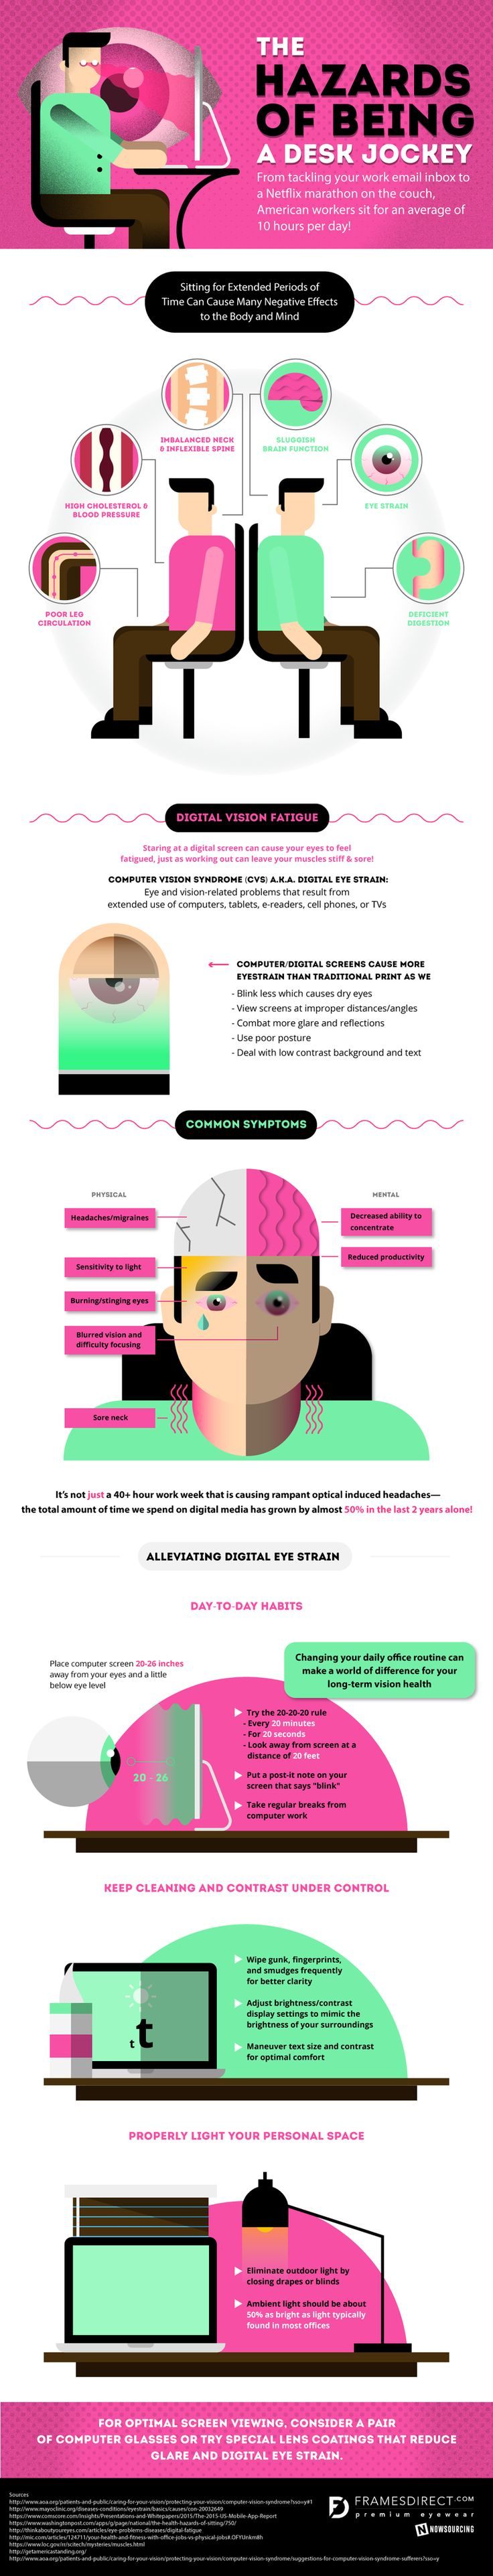 How Is Being A Desk Jockey Damaging Your Mind And Body? What Can You Do About It? #infographic